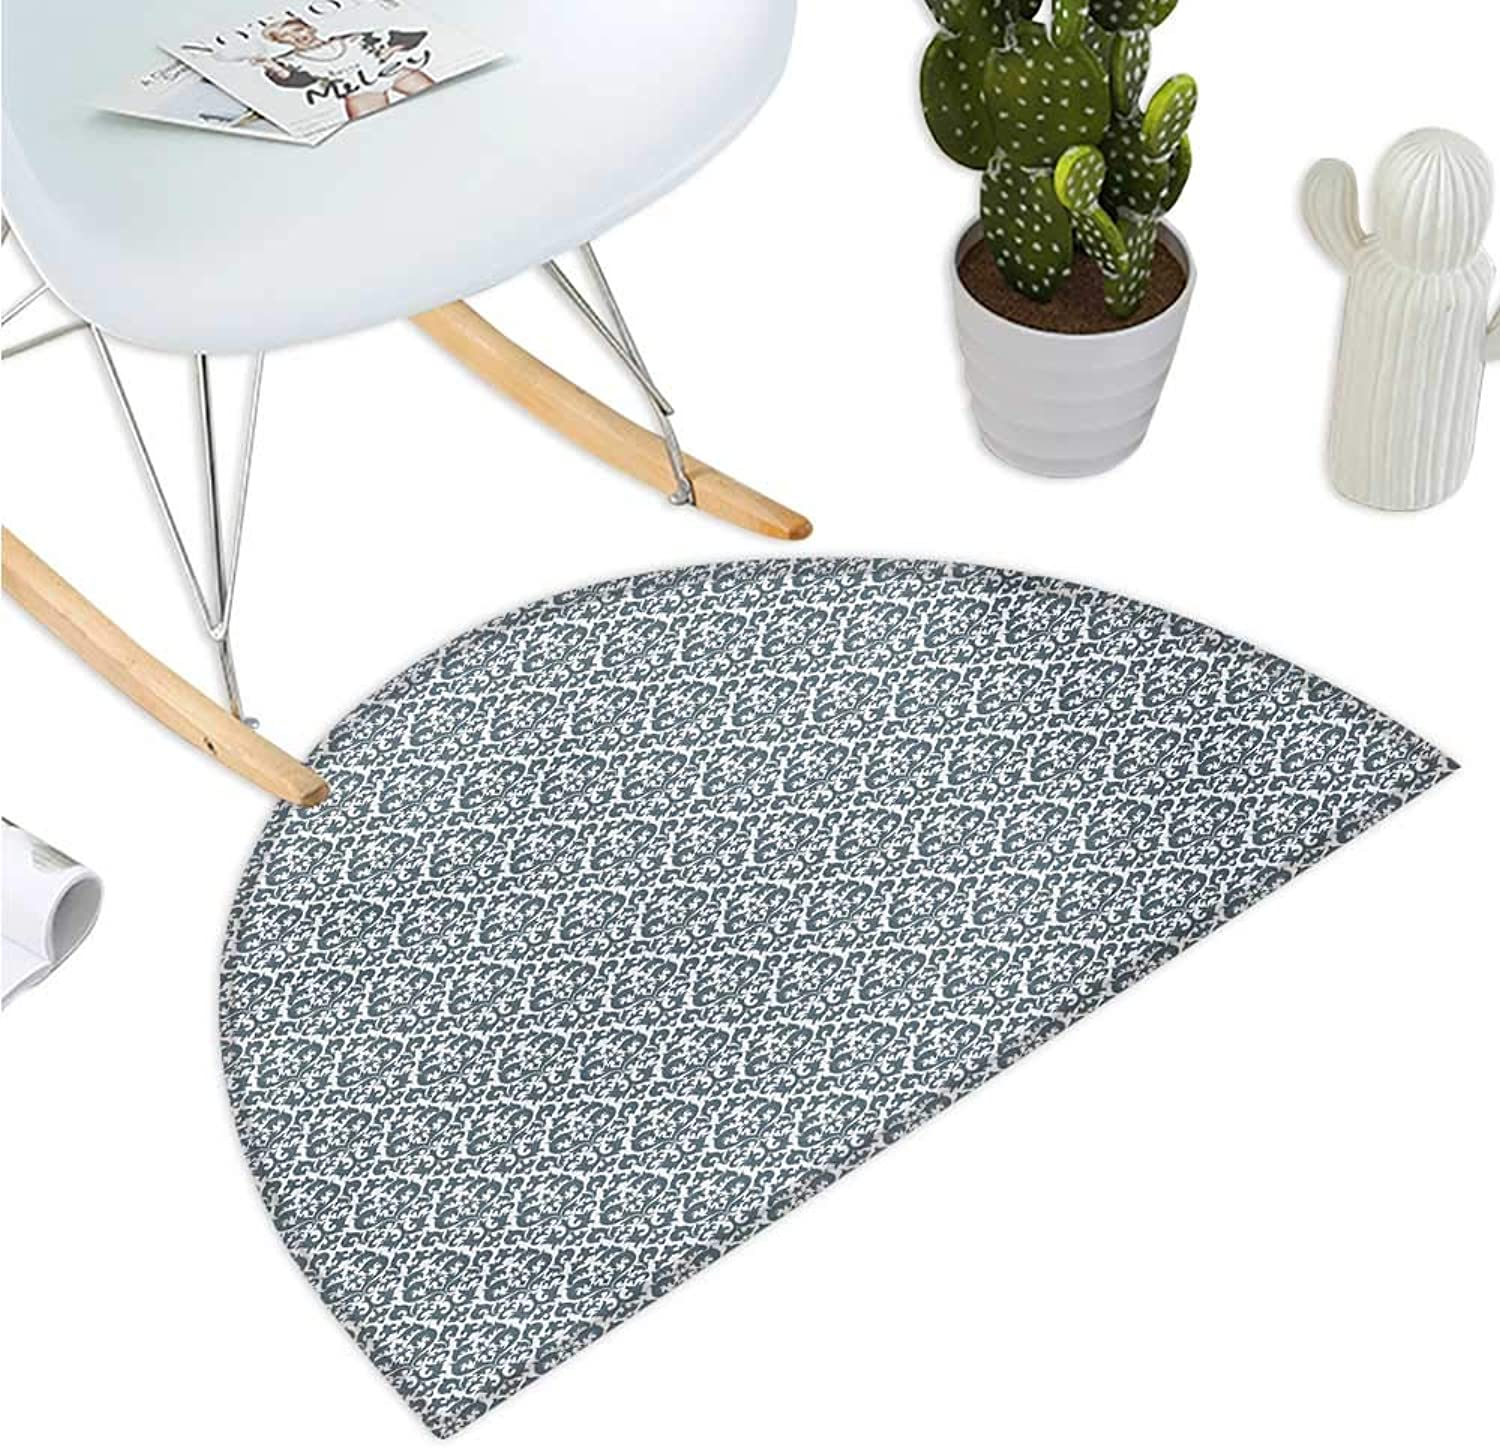 Damask Half Round Door mats Curvy Repeating Renaissance Motifs Inspired by Nature Vintage Design Curls Leaves Entry Door Mat H 39.3  xD 59  Grey White